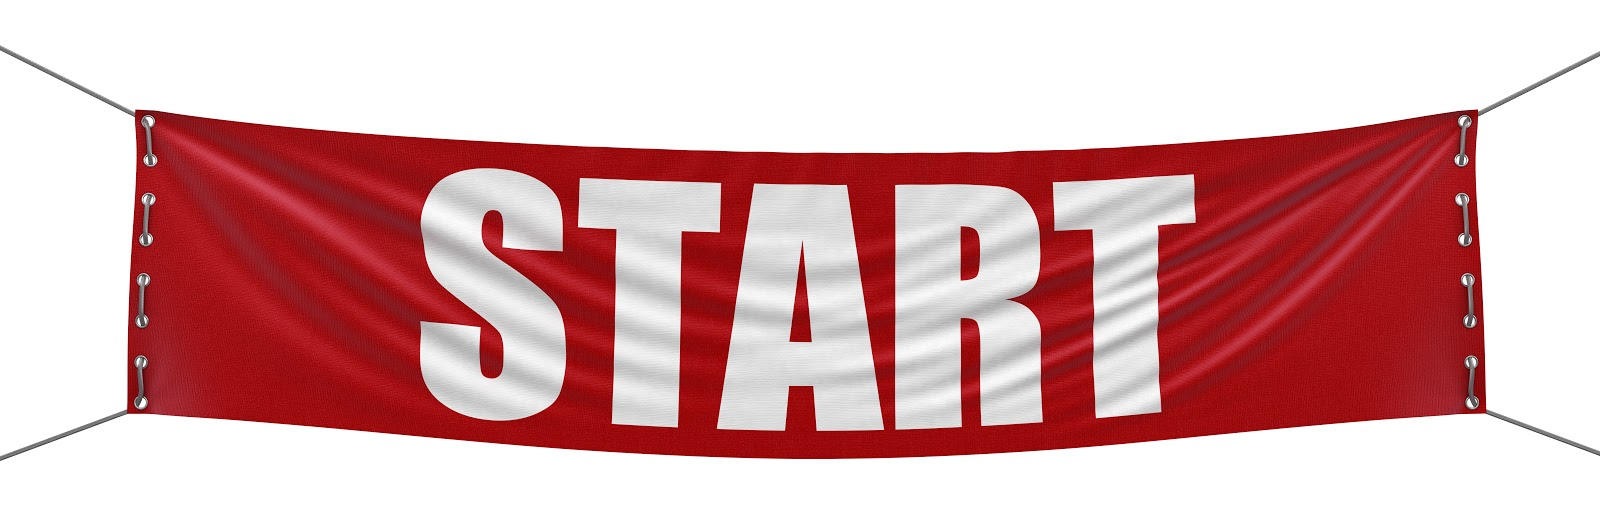 Start banner like for a run or other race